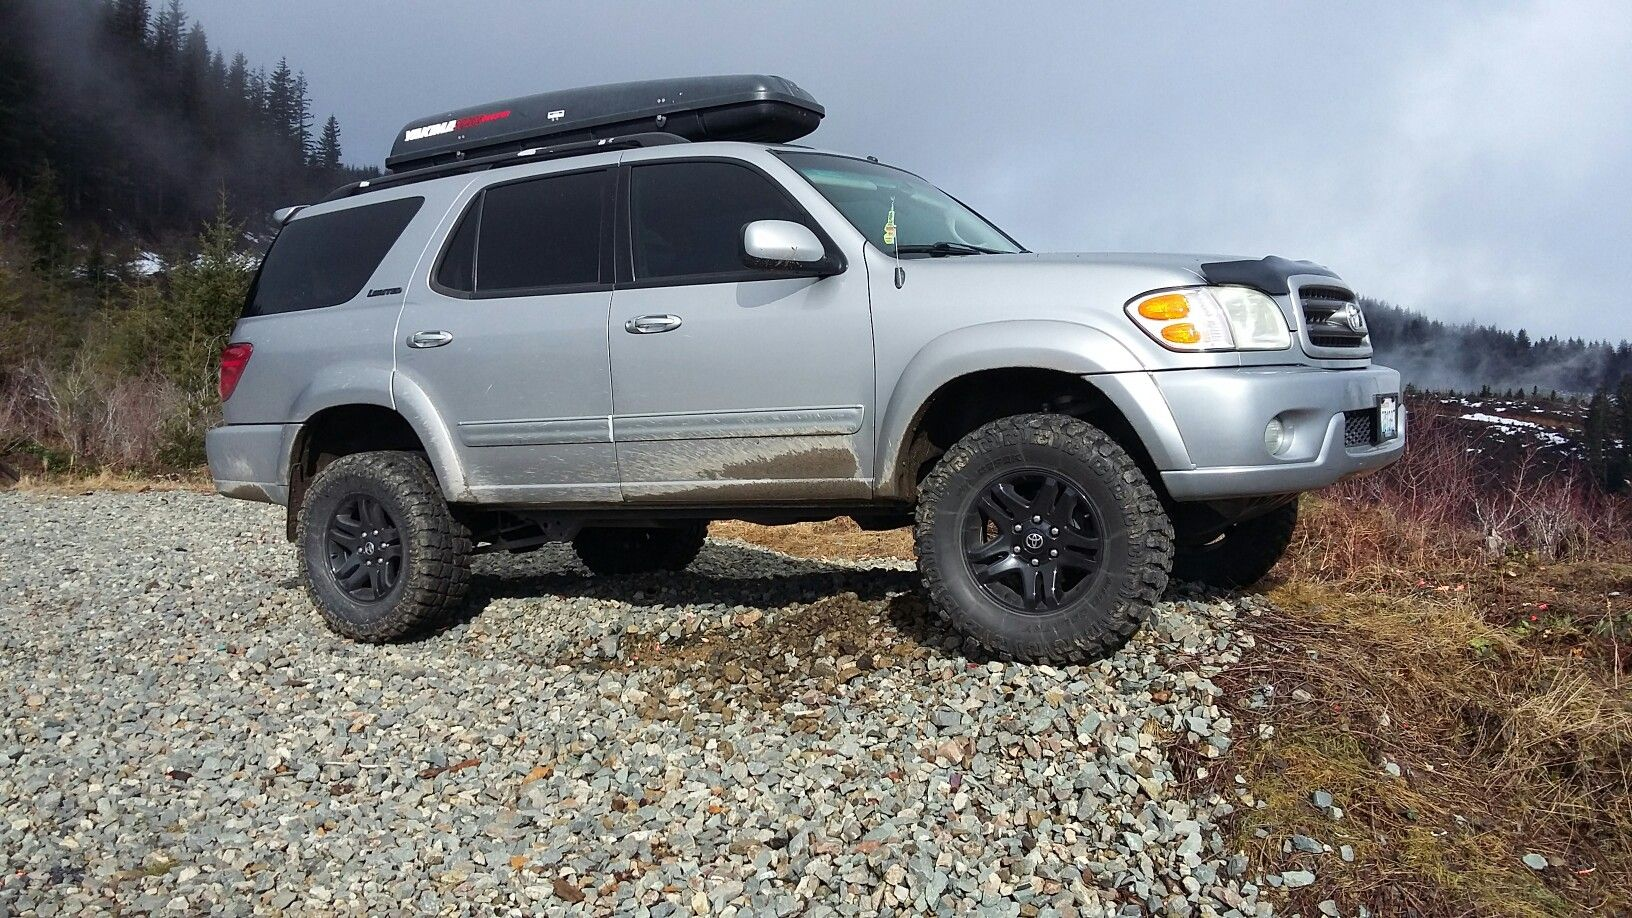 Pin By Tom Broadwater On Toyota Sequoia Toyota Sequioa